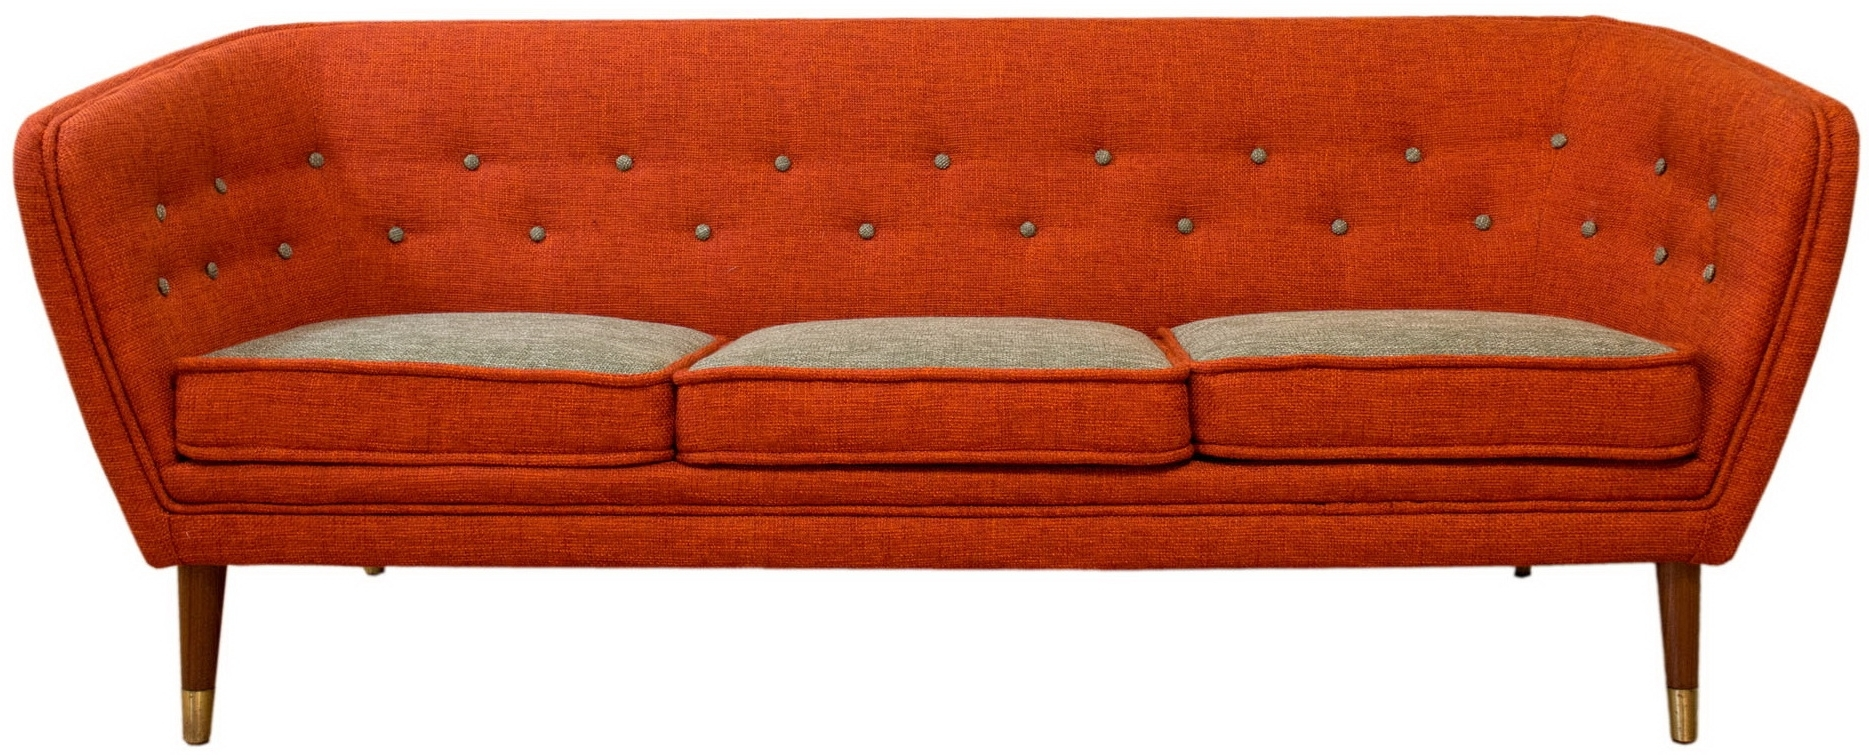 1930S Sofas 37 With 1930S Sofas – Fjellkjeden Intended For Most Up To Date 1930S Sofas (View 2 of 20)